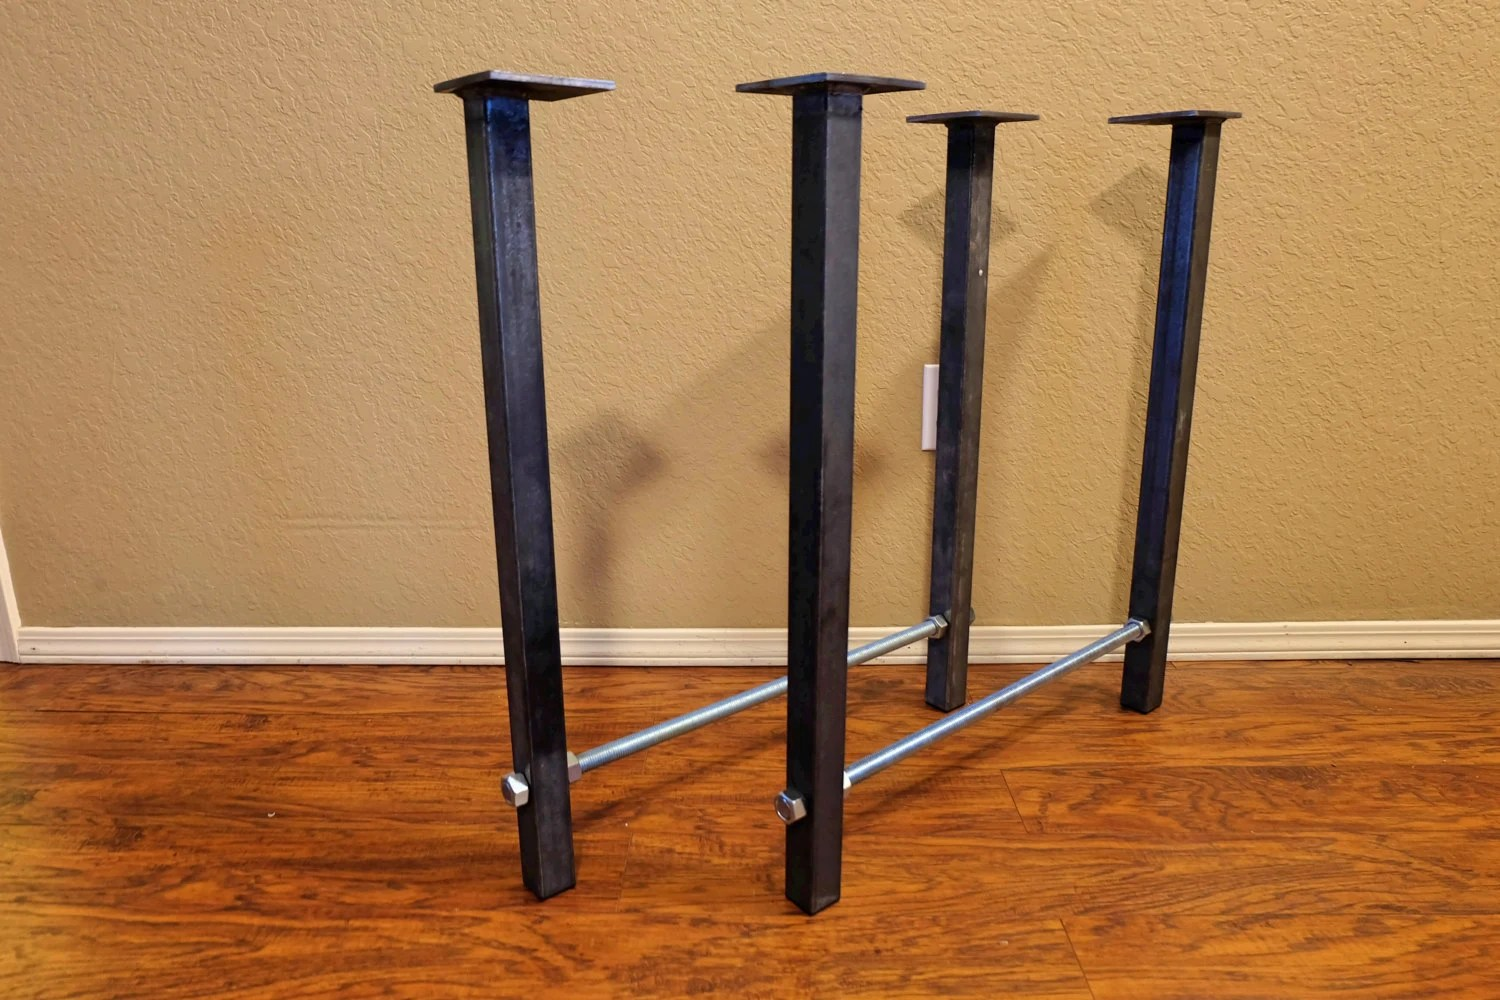 plastic inserts for metal chair legs folding chairs home depot 28 tall x 24 wide table with threaded